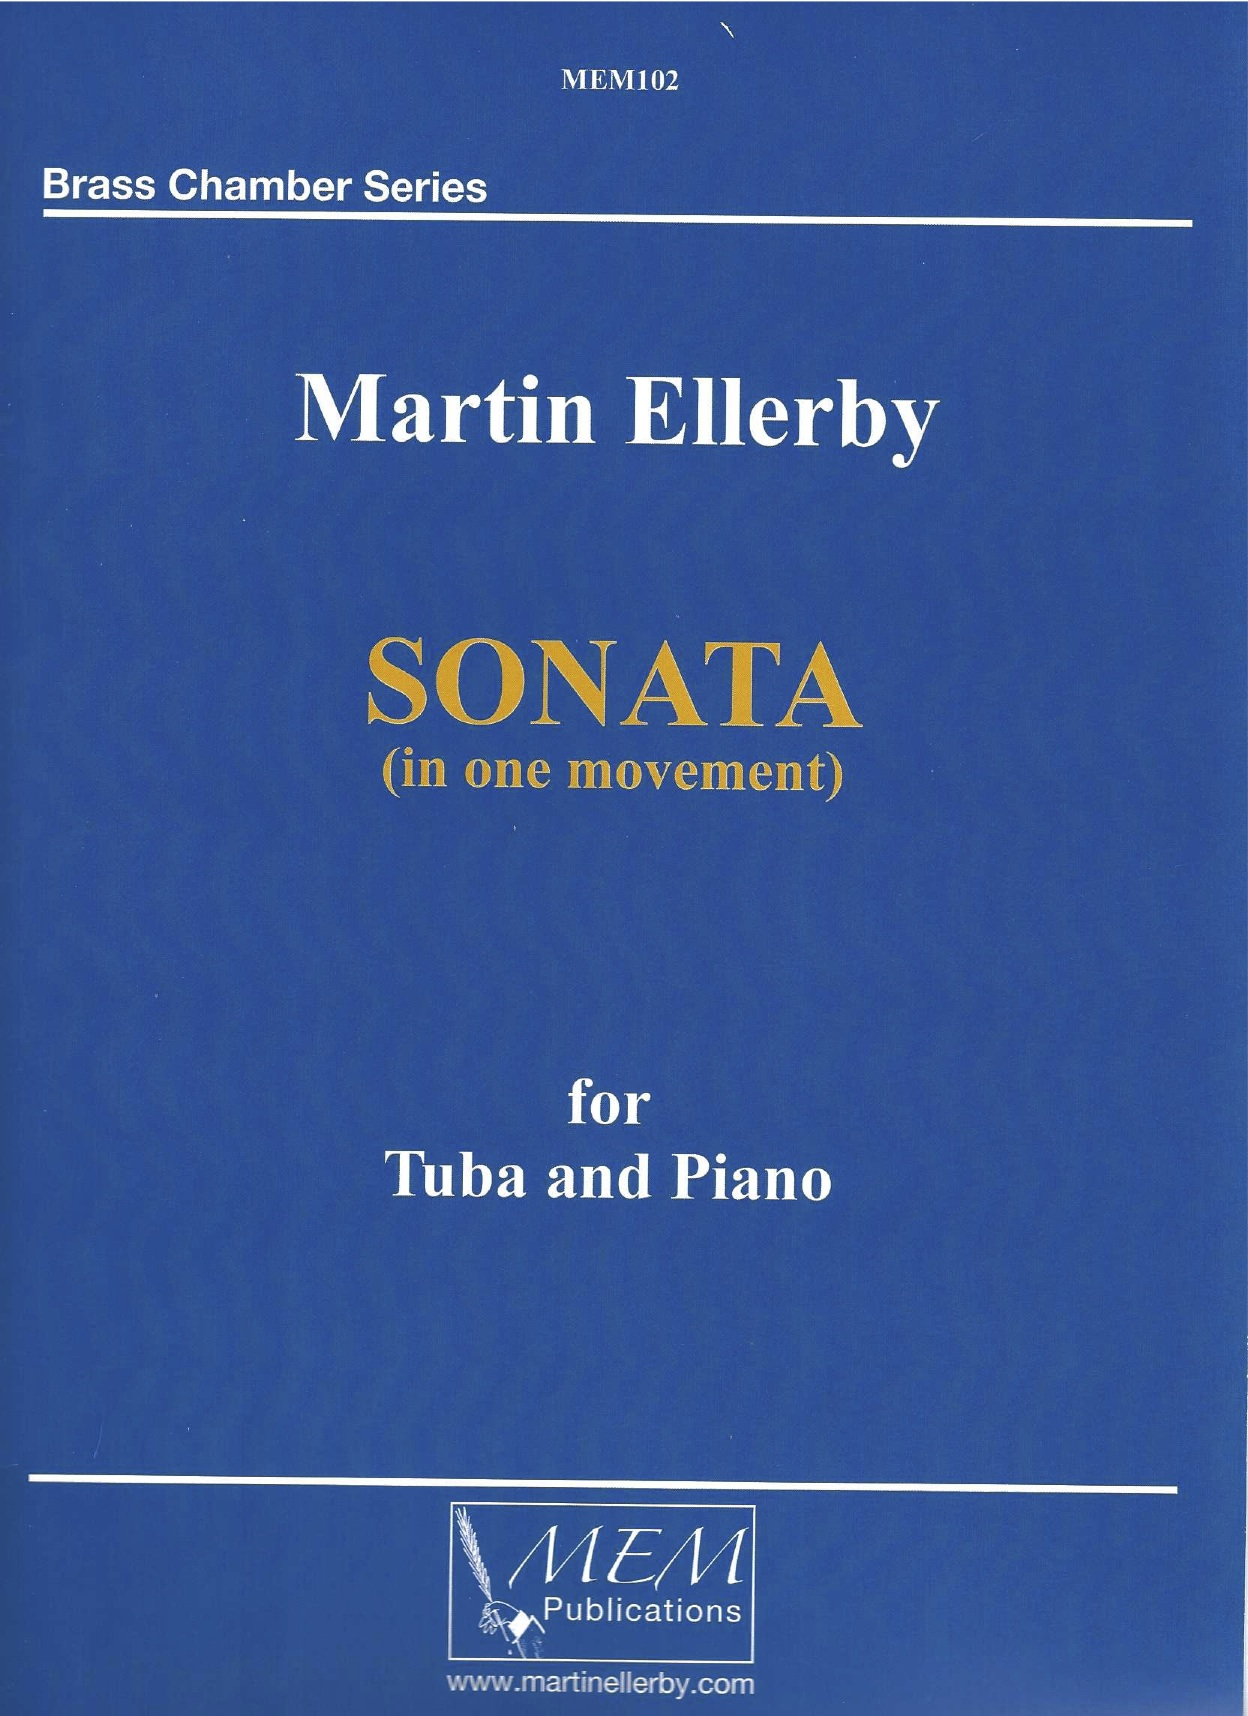 Sonata for Tuba and Piano - Martin Ellerby